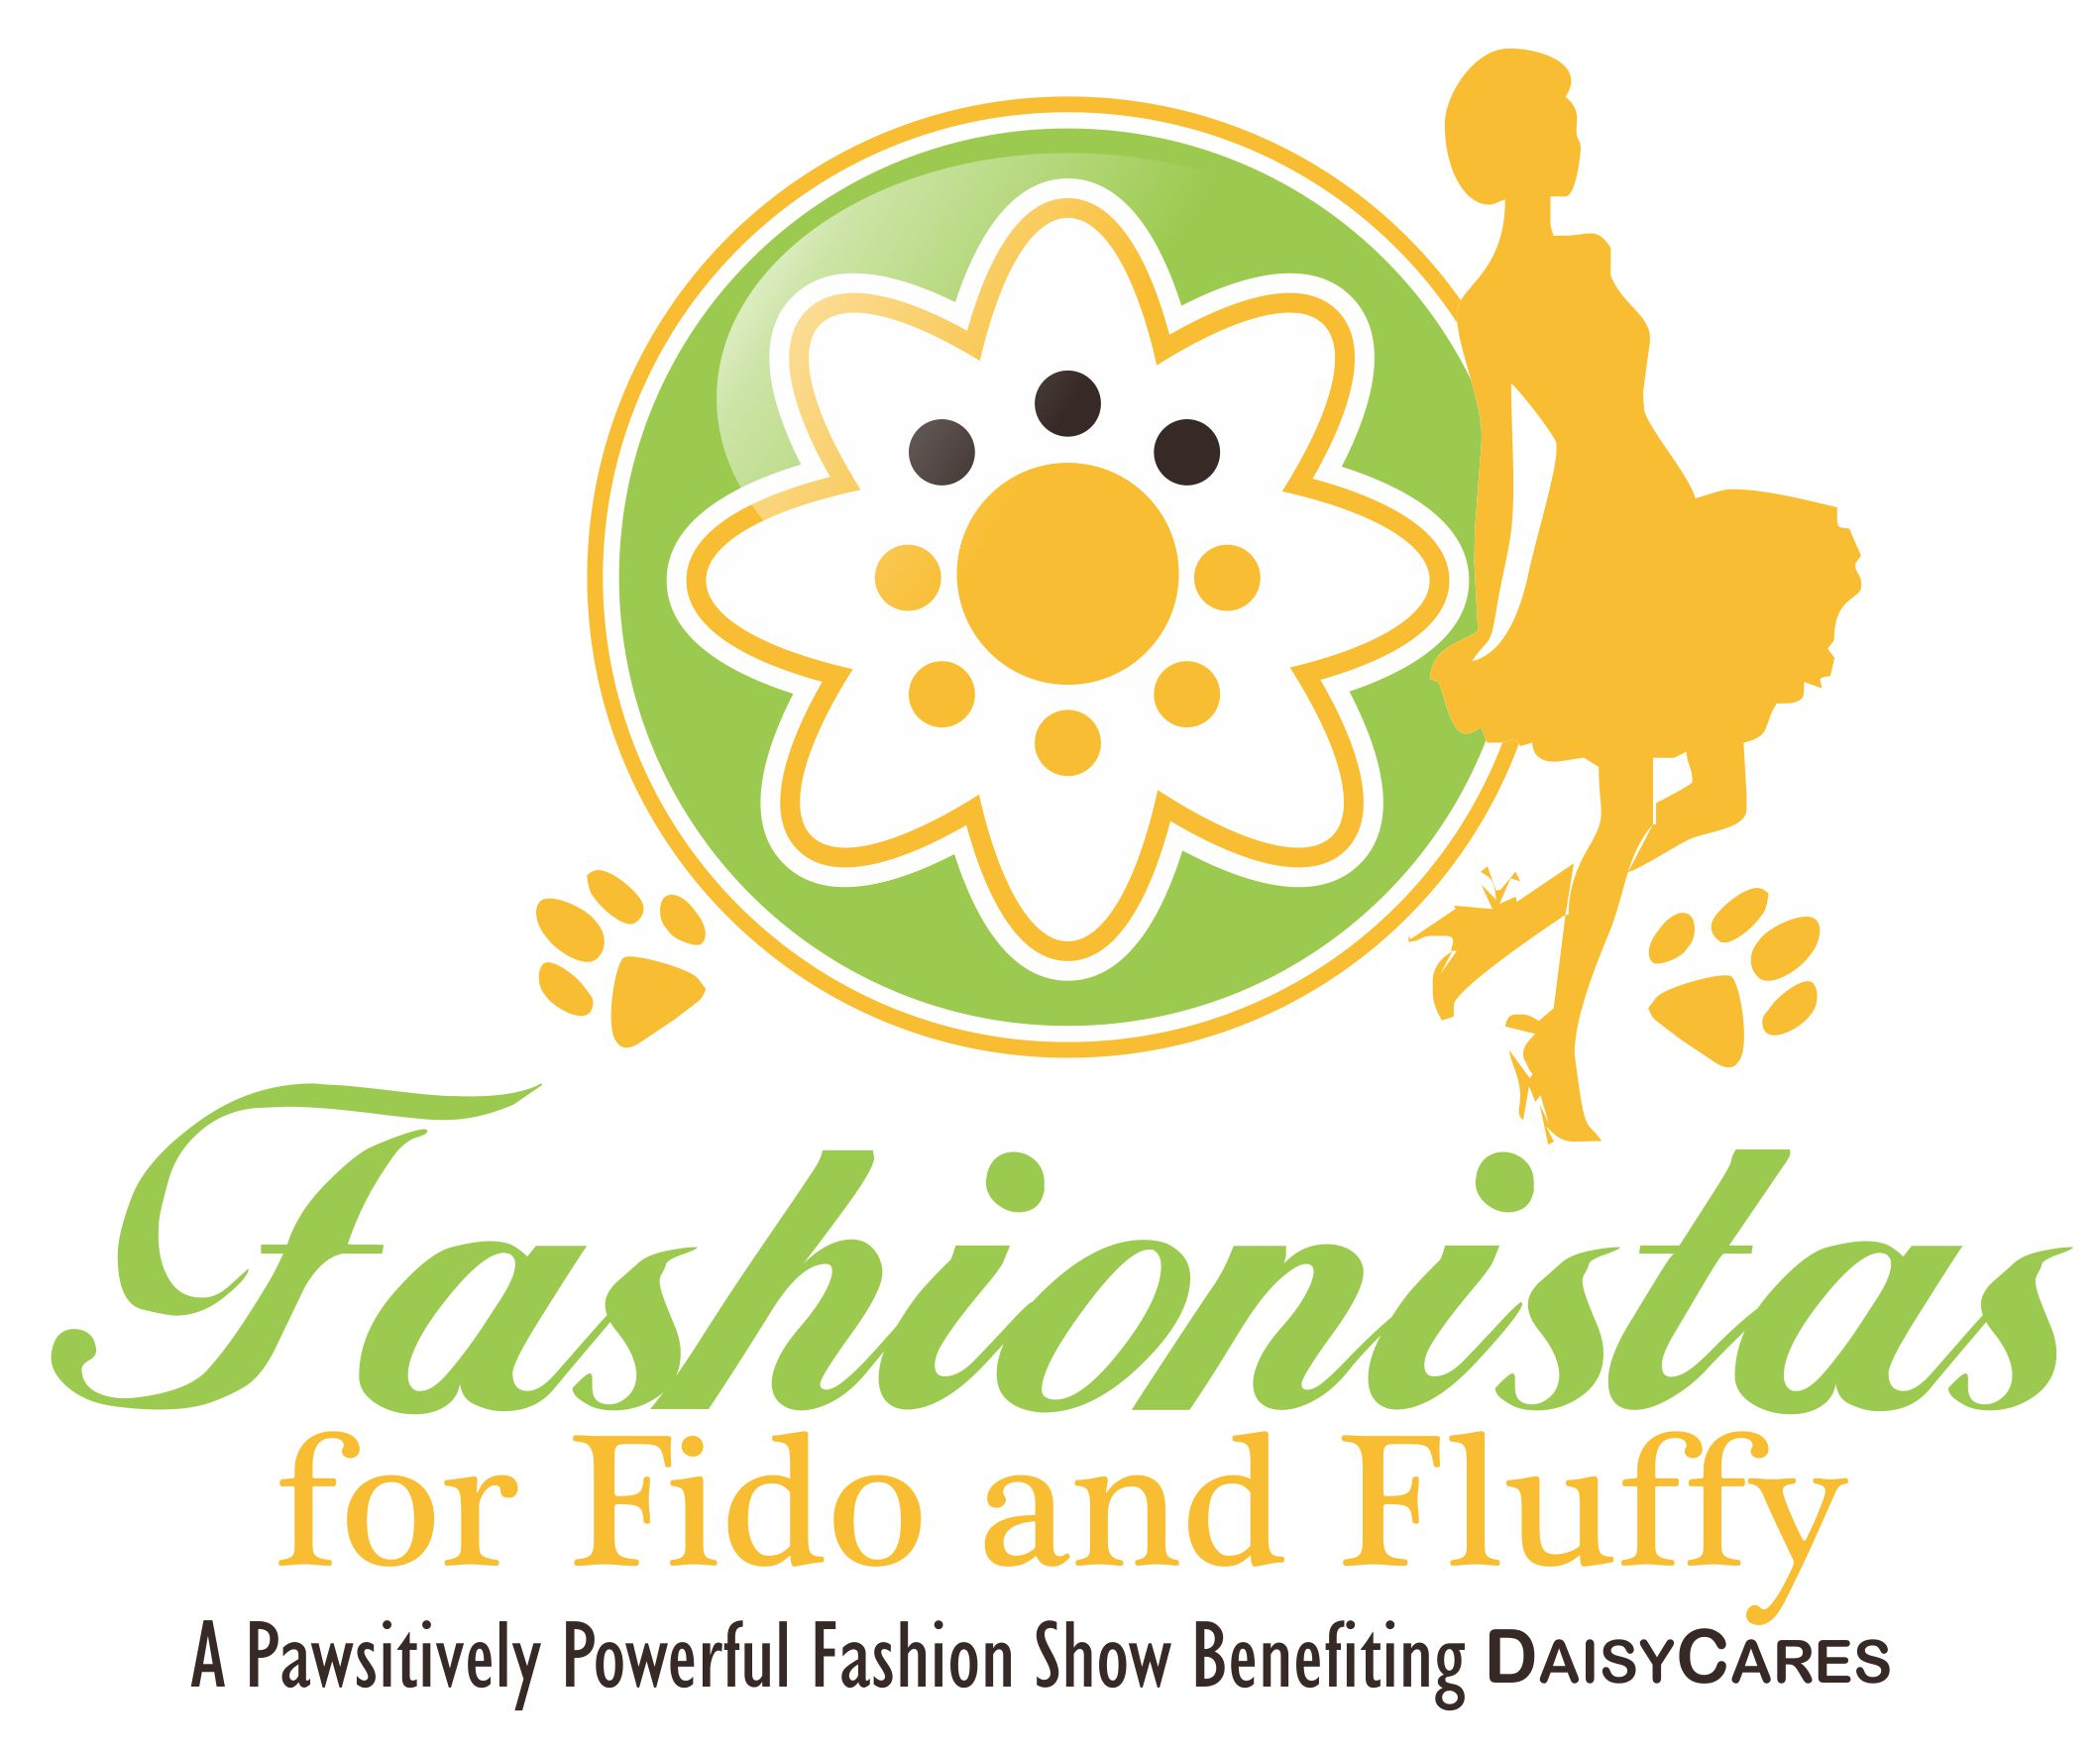 Giving Back Daisycares Charity Fashion Show To Channing Tatum